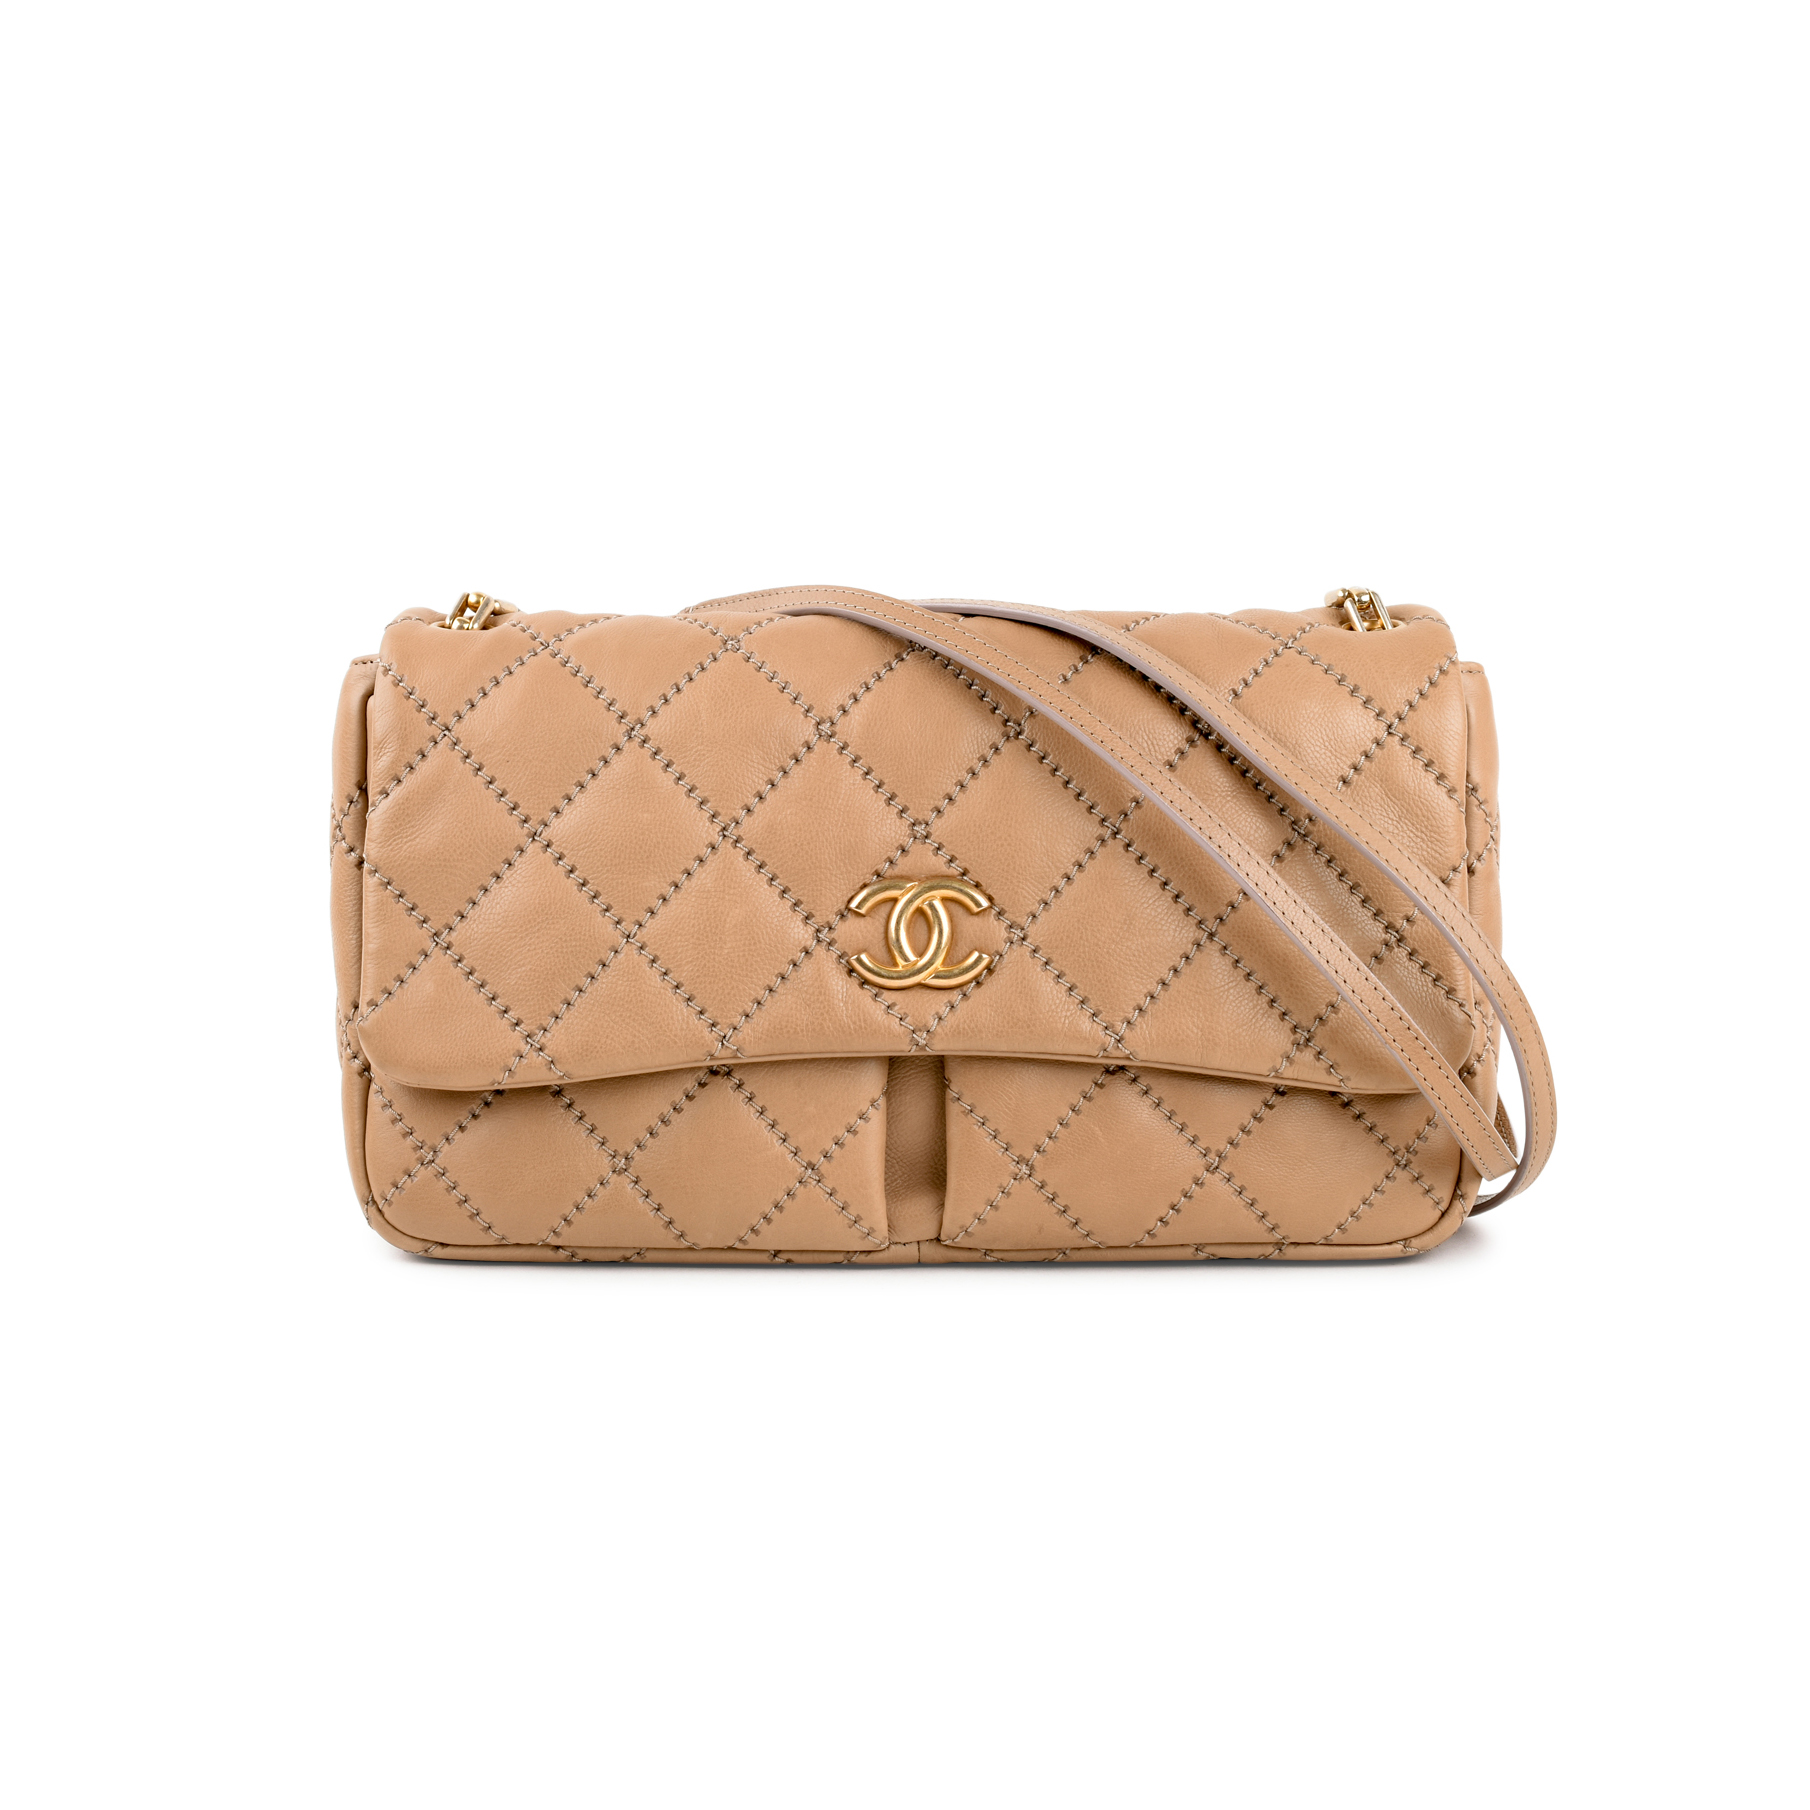 d405e8f9537f10 Authentic Second Hand Chanel Retro Chain Flap Bag (PSS-240-00217) | THE  FIFTH COLLECTION